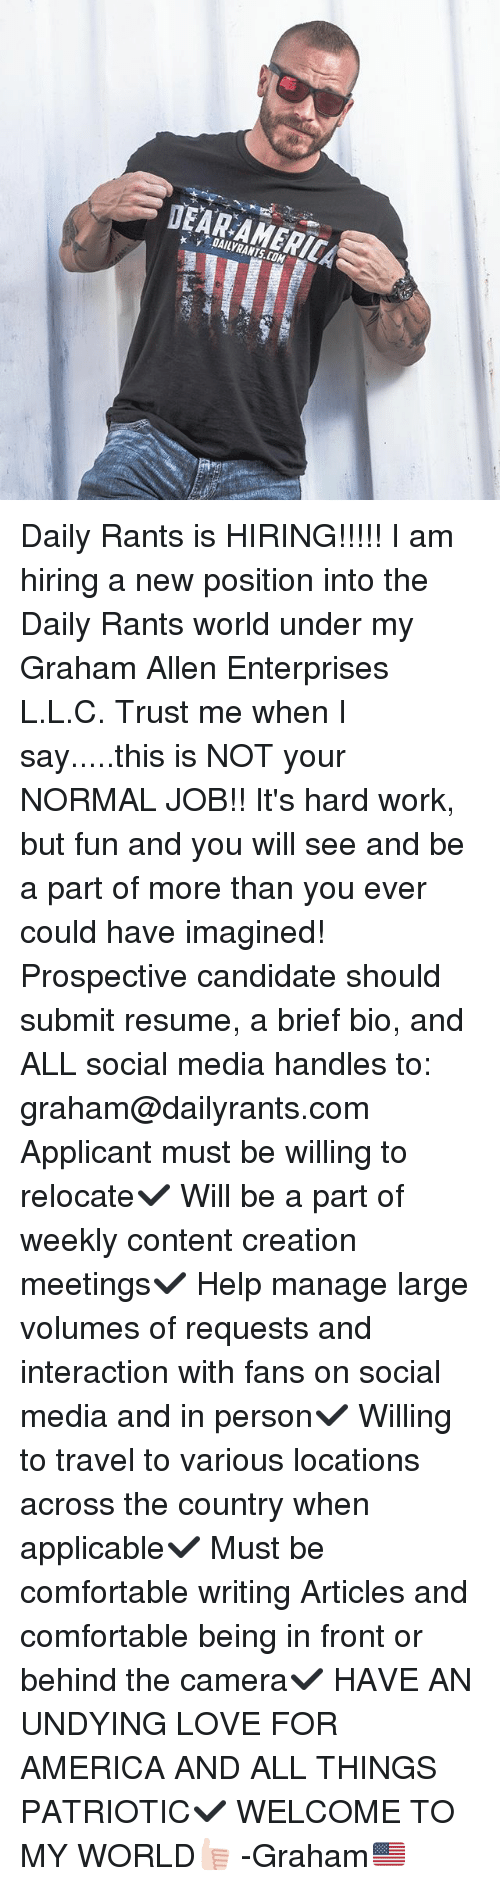 volumes: DAILYRANTS.COM Daily Rants is HIRING!!!!! I am hiring a new position into the Daily Rants world under my Graham Allen Enterprises L.L.C. Trust me when I say.....this is NOT your NORMAL JOB!! It's hard work, but fun and you will see and be a part of more than you ever could have imagined! Prospective candidate should submit resume, a brief bio, and ALL social media handles to: graham@dailyrants.com Applicant must be willing to relocate✔️ Will be a part of weekly content creation meetings✔️ Help manage large volumes of requests and interaction with fans on social media and in person✔️ Willing to travel to various locations across the country when applicable✔️ Must be comfortable writing Articles and comfortable being in front or behind the camera✔️ HAVE AN UNDYING LOVE FOR AMERICA AND ALL THINGS PATRIOTIC✔️ WELCOME TO MY WORLD👍🏻 -Graham🇺🇸